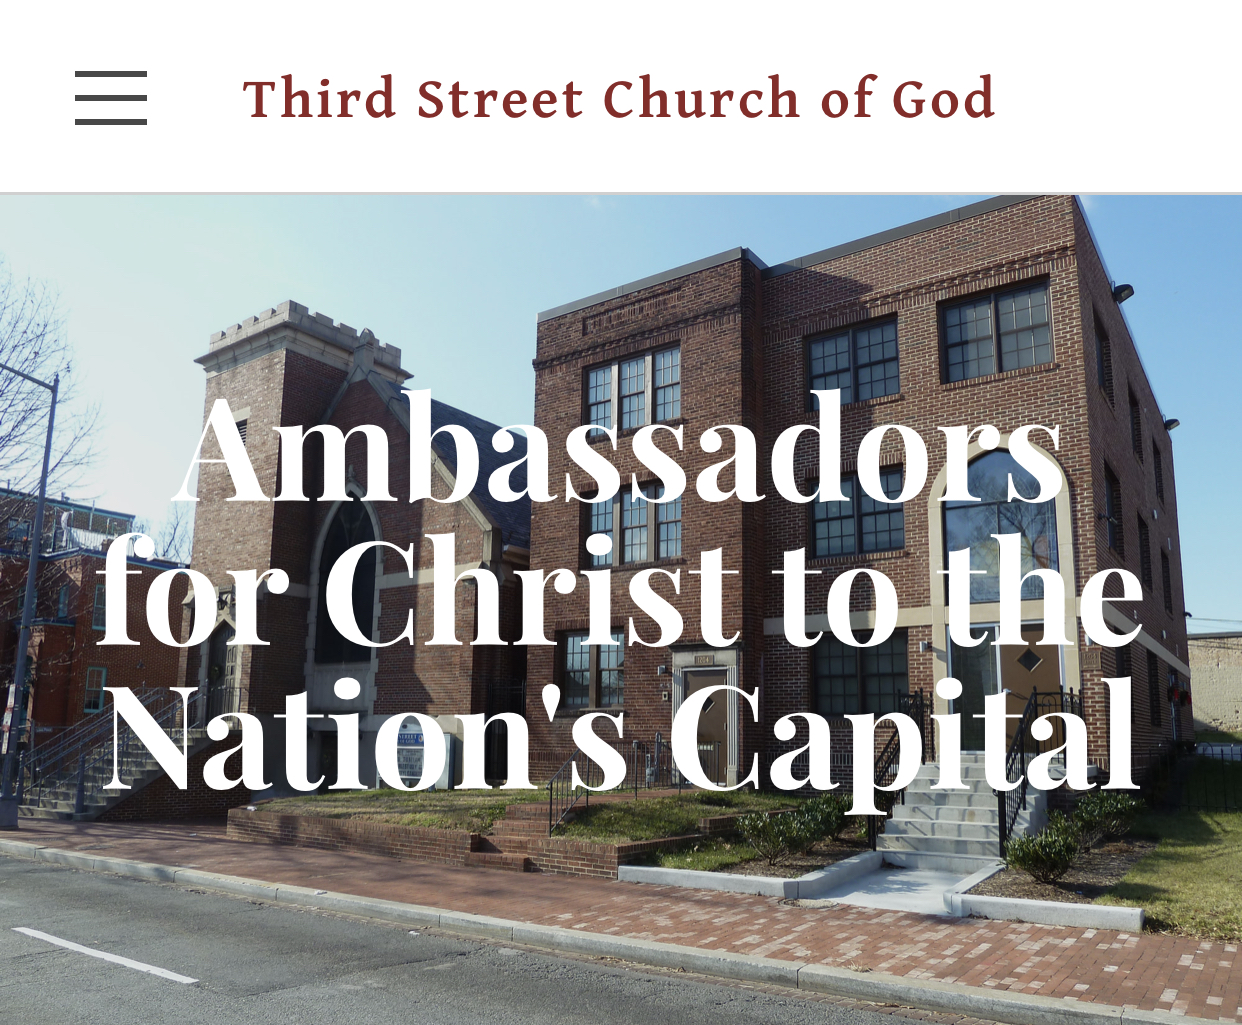 Third Street Church and God